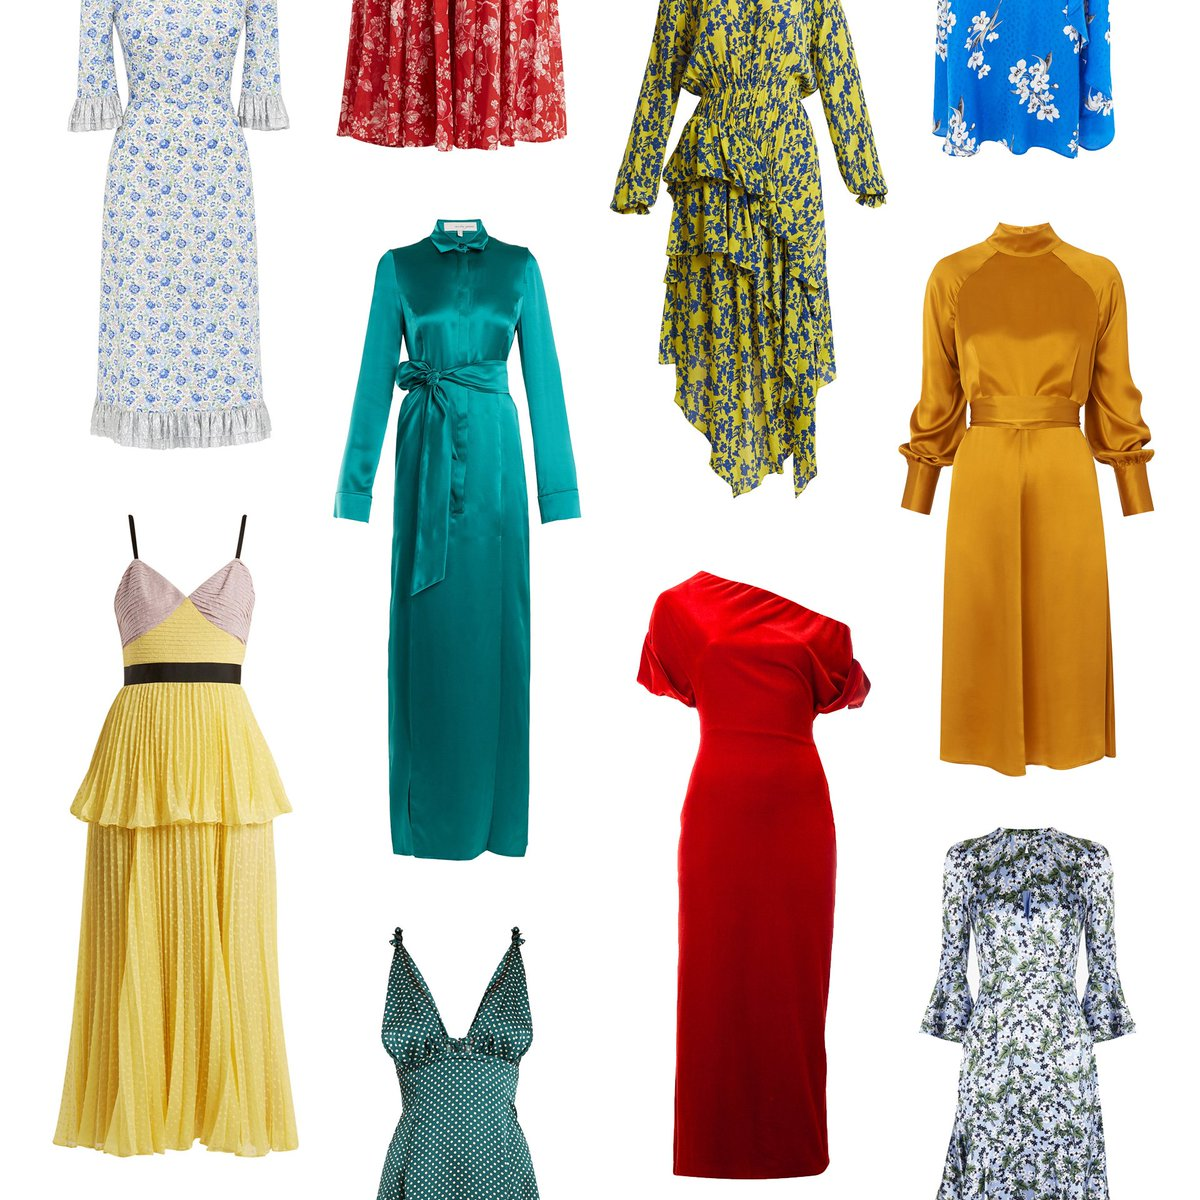 Spring Wedding Guest Dresses.British Vogue On Twitter 20 Of The Best Spring Wedding Guest